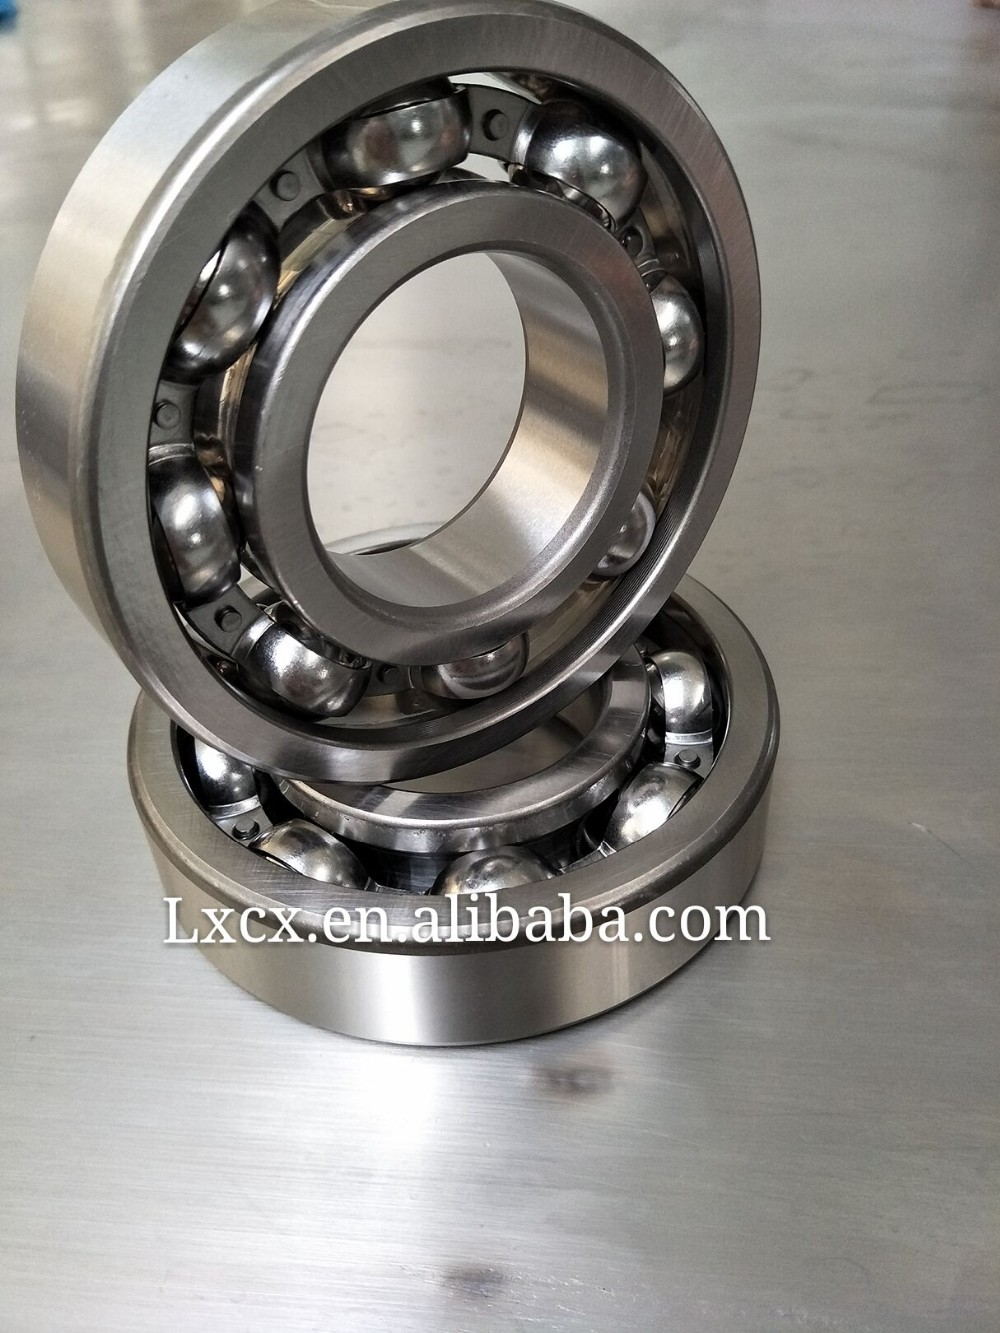 Quality bearing Low price deep groove ball bearing 6032(160*240*38mm)OPEN Z ZZ N RZ RS 2RZ 2RS Manufacture factory